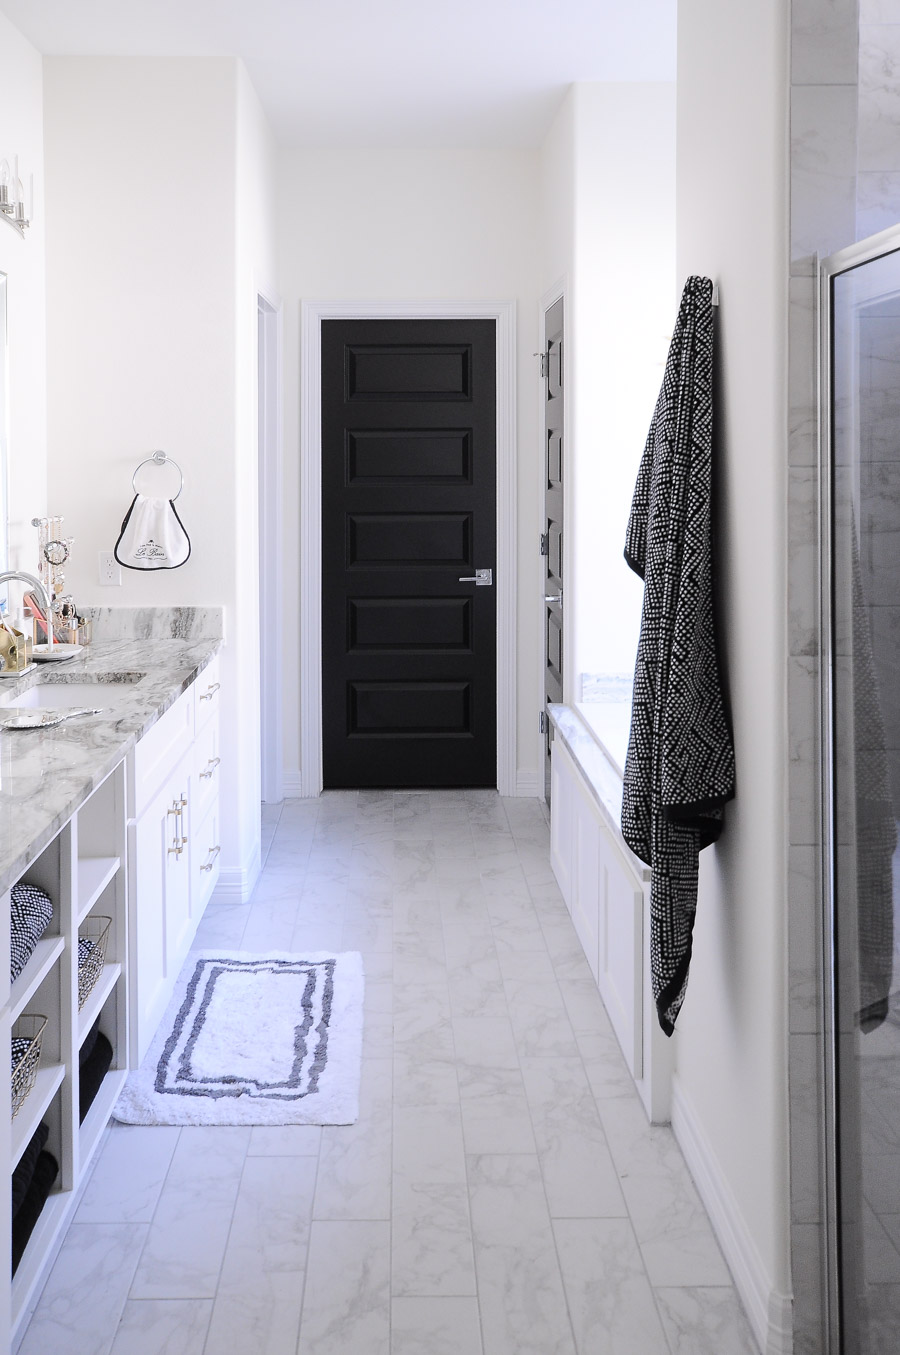 Black doors make a bold statement against white walls in this chic white & gold master bathroom suite.